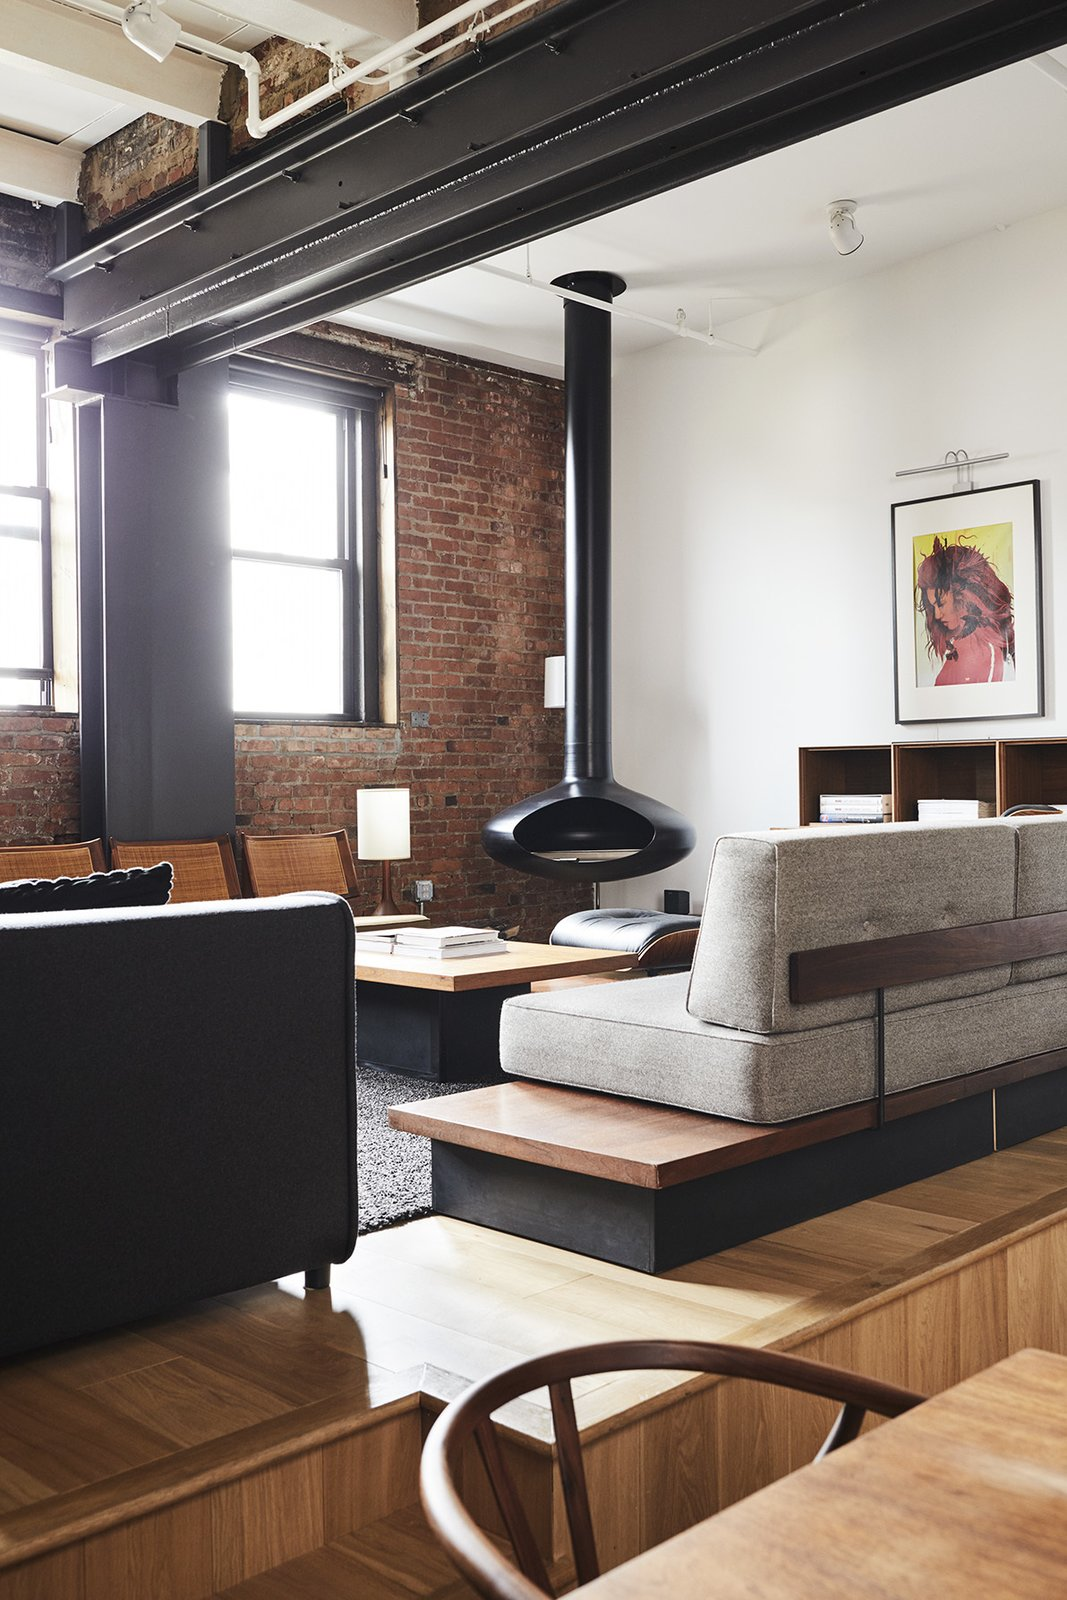 OSSO Architecture renovated Brooklyn loft apartment living room